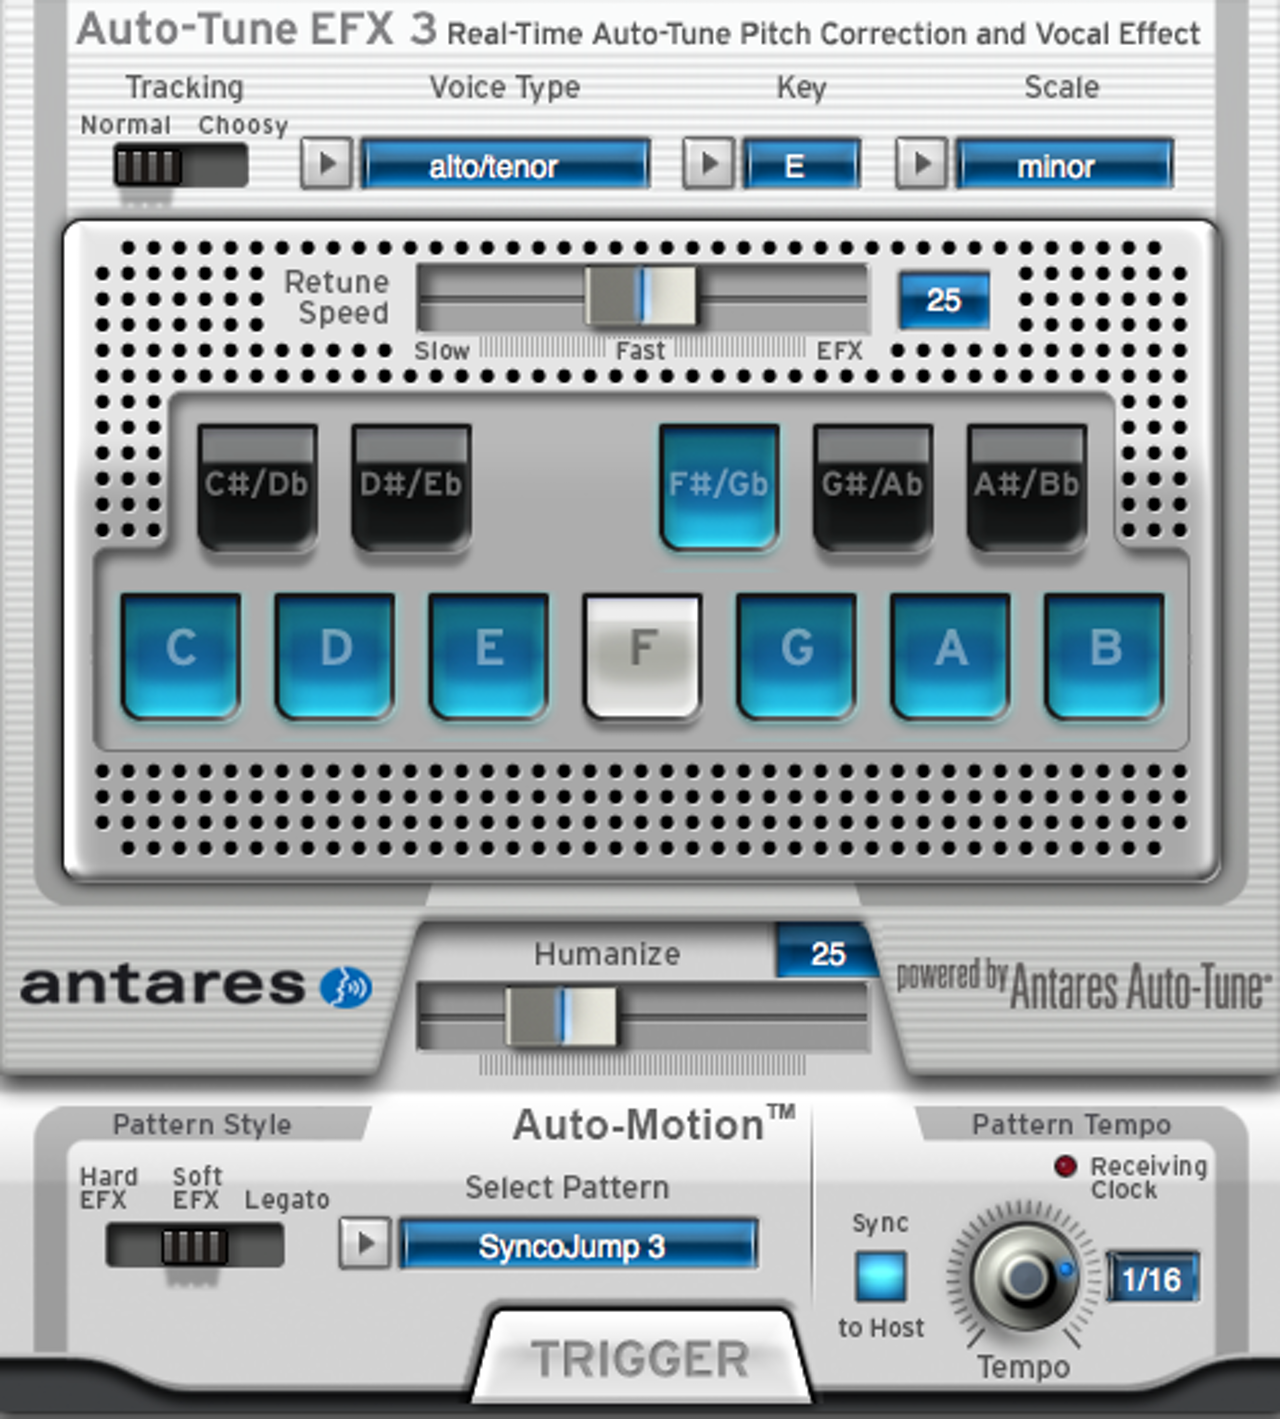 Auto-Tune EFX 3 pitch correction plugin (this version released 2016)